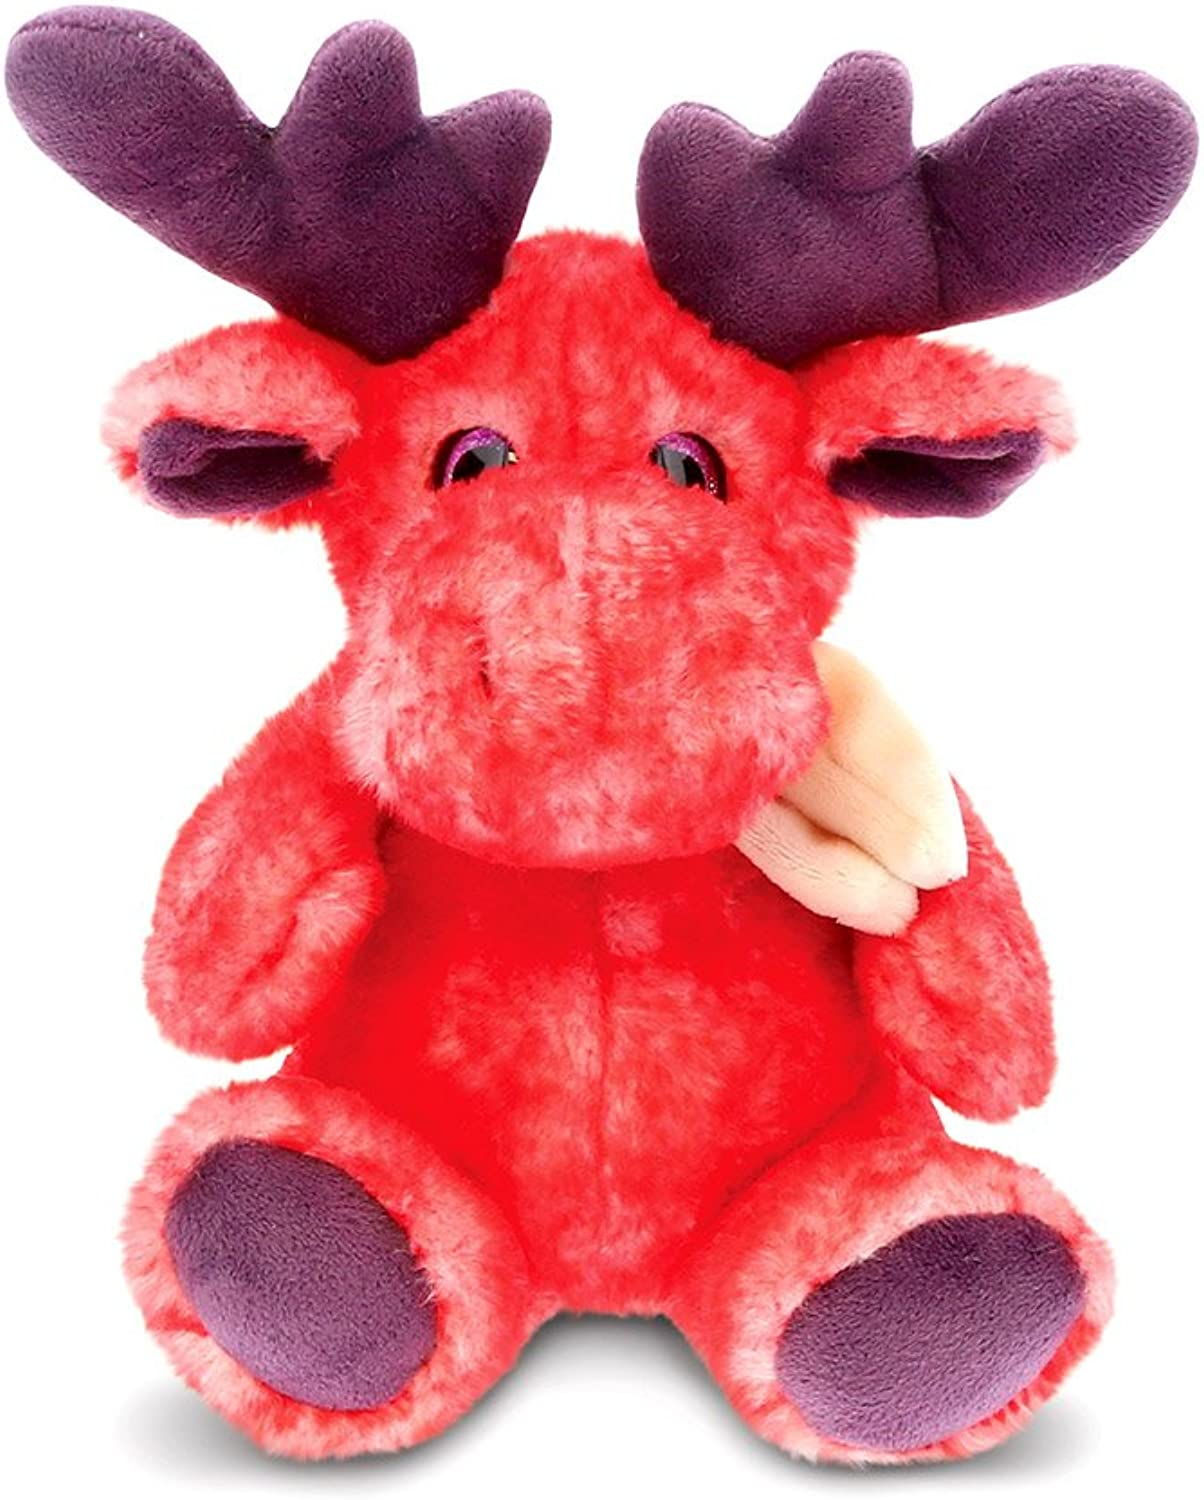 CoTa Global Sitting Red Moose with Scarf - 11 inch - Super Soft Plush - Item  5451